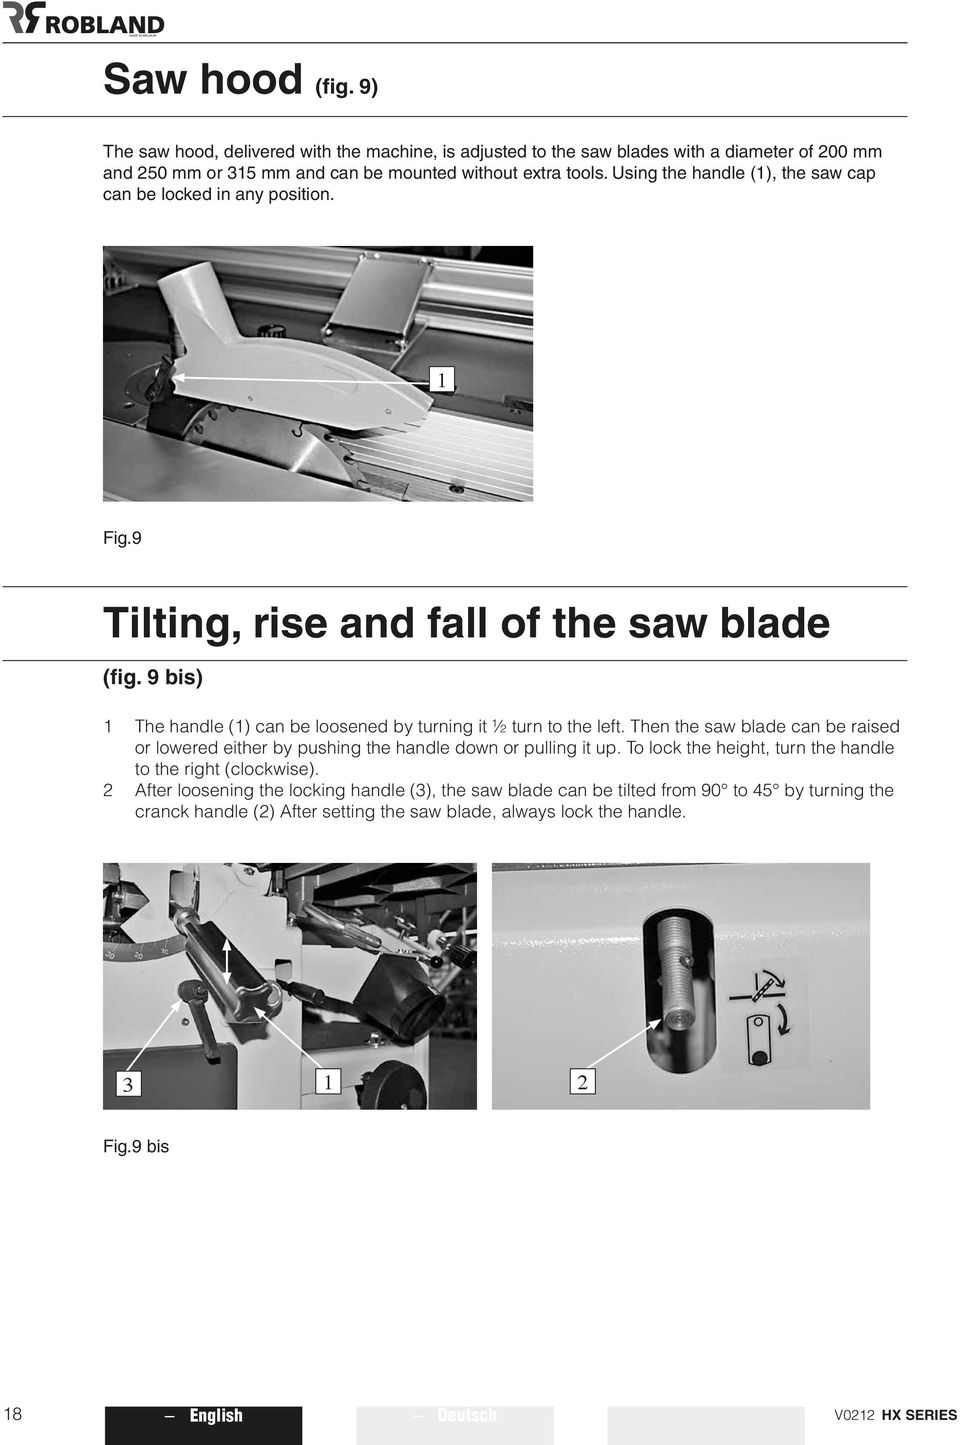 9 bis) 1 The handle (1) can be loosened by turning it ½ turn to the left. Then the saw blade can be raised or lowered either by pushing the handle down or pulling it up.